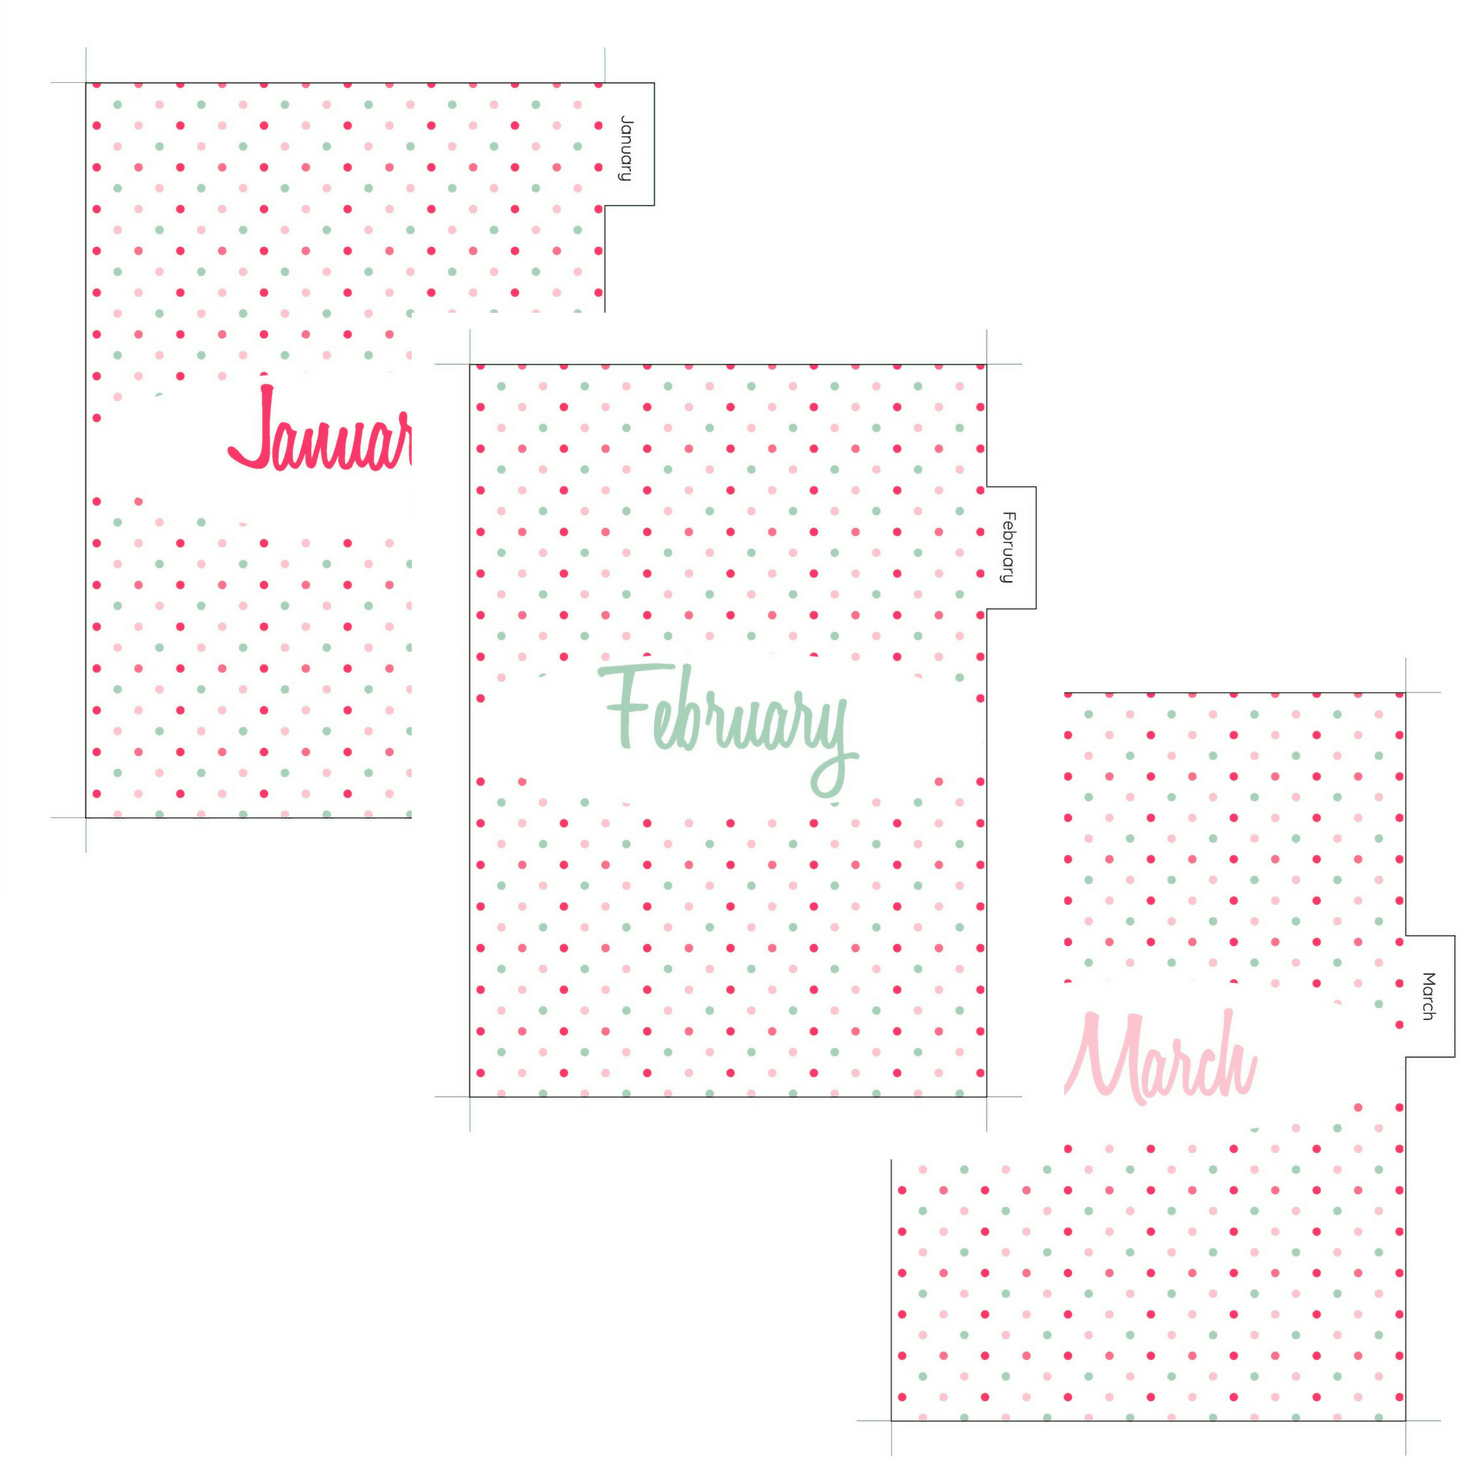 Download your free printable monthly dividers with tabs now! The dividers are designed for A5 planners and are designed to fit an A5 filofax or planner such as Kikki K and can be used year after year. These cute dividers have a colourful polka dots design and would be a beautiful addition to any planner. For more freebies, visit www.trueblissdesigns.com.